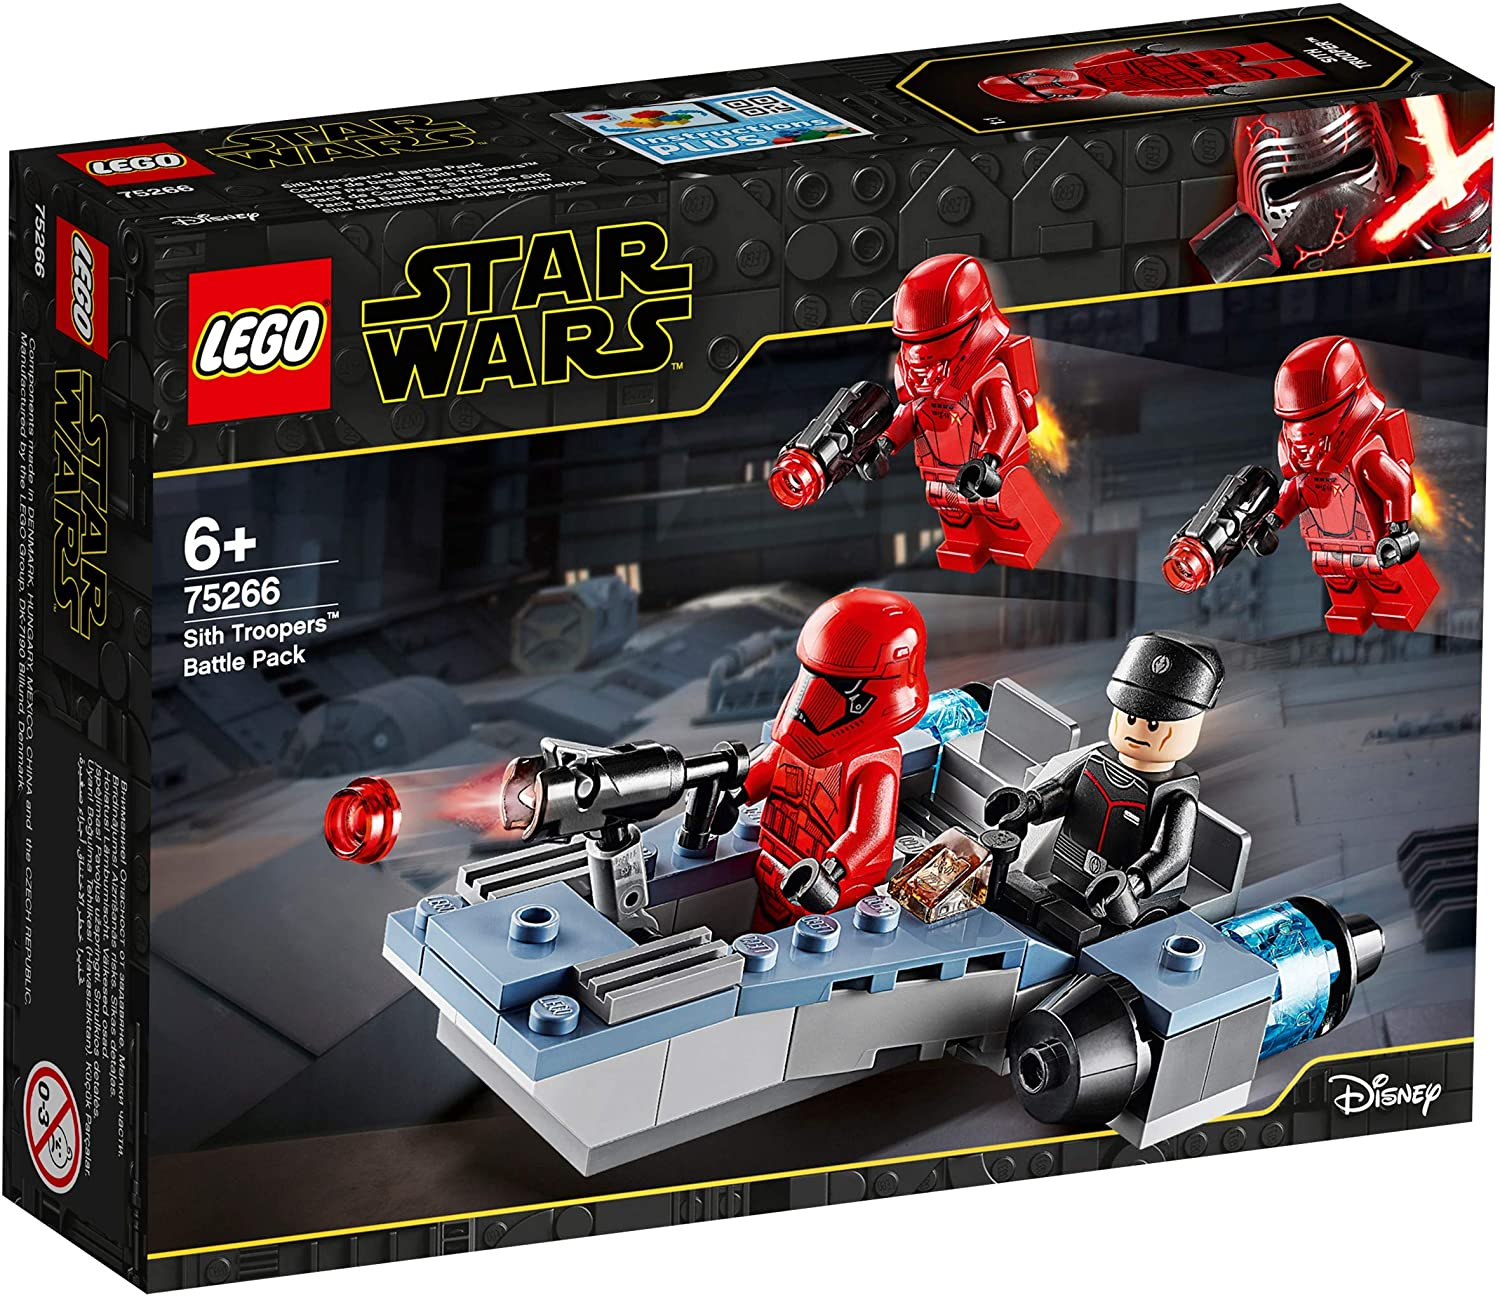 Lego Star Wars - Sith Troopers™ Battle Pack